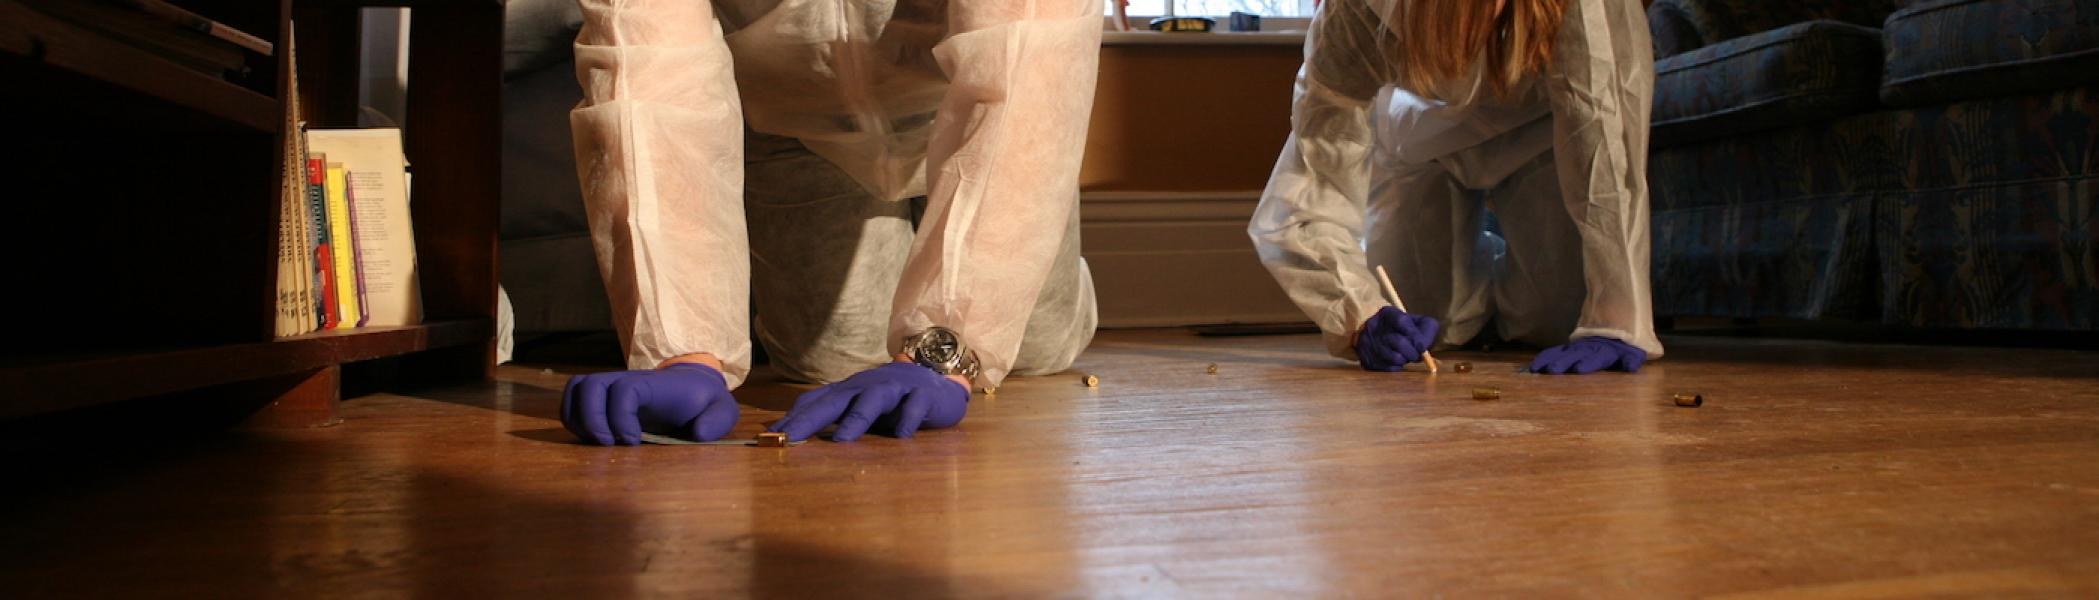 2 people kneeling down in a house investigating something on the floor